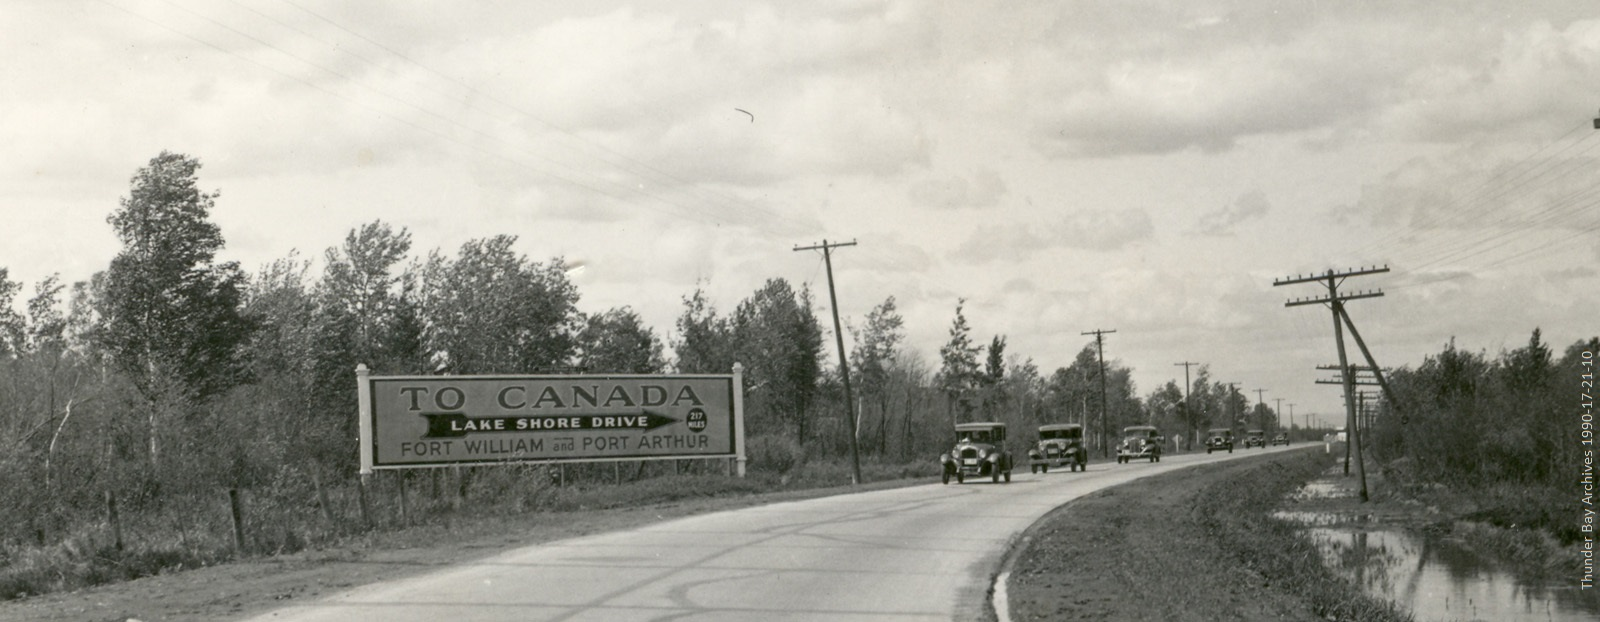 black and white photo of a road sign to Port Arthur and Fort William and old cars on driving on road